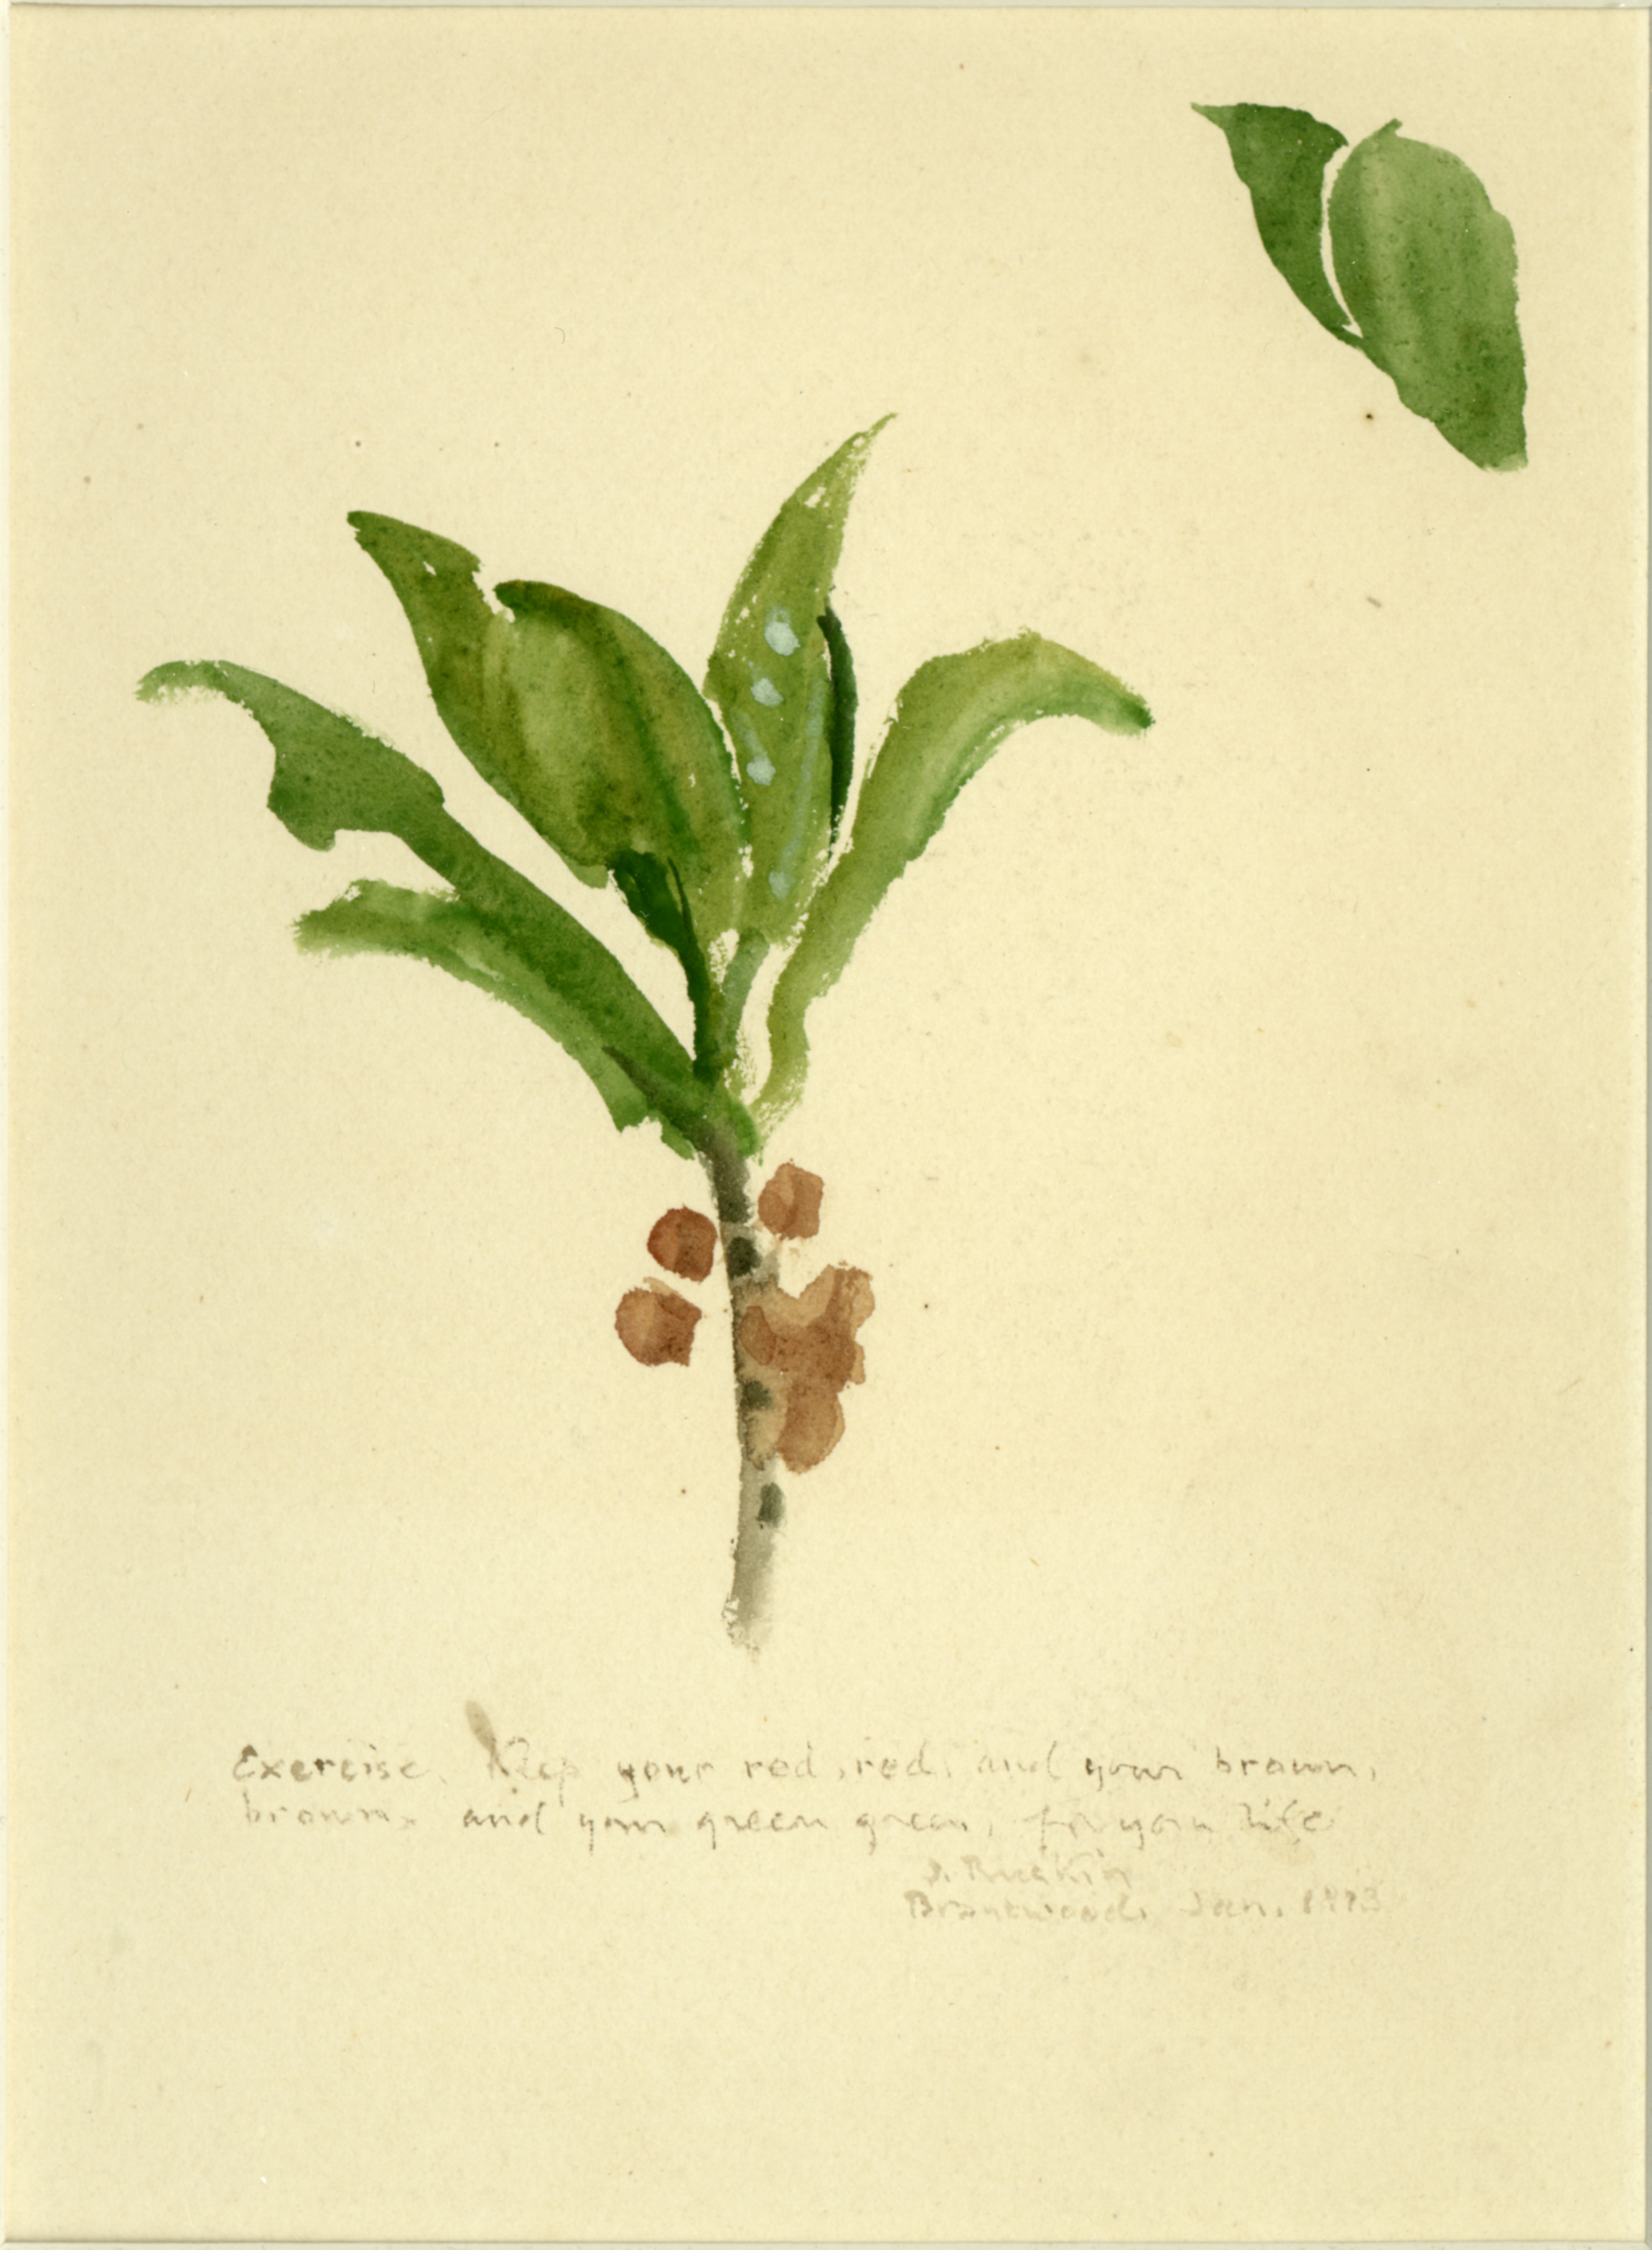 John Ruskin, Study of Leaves and Berries, 1873(Jan), RF1353 © Ruskin Foundation